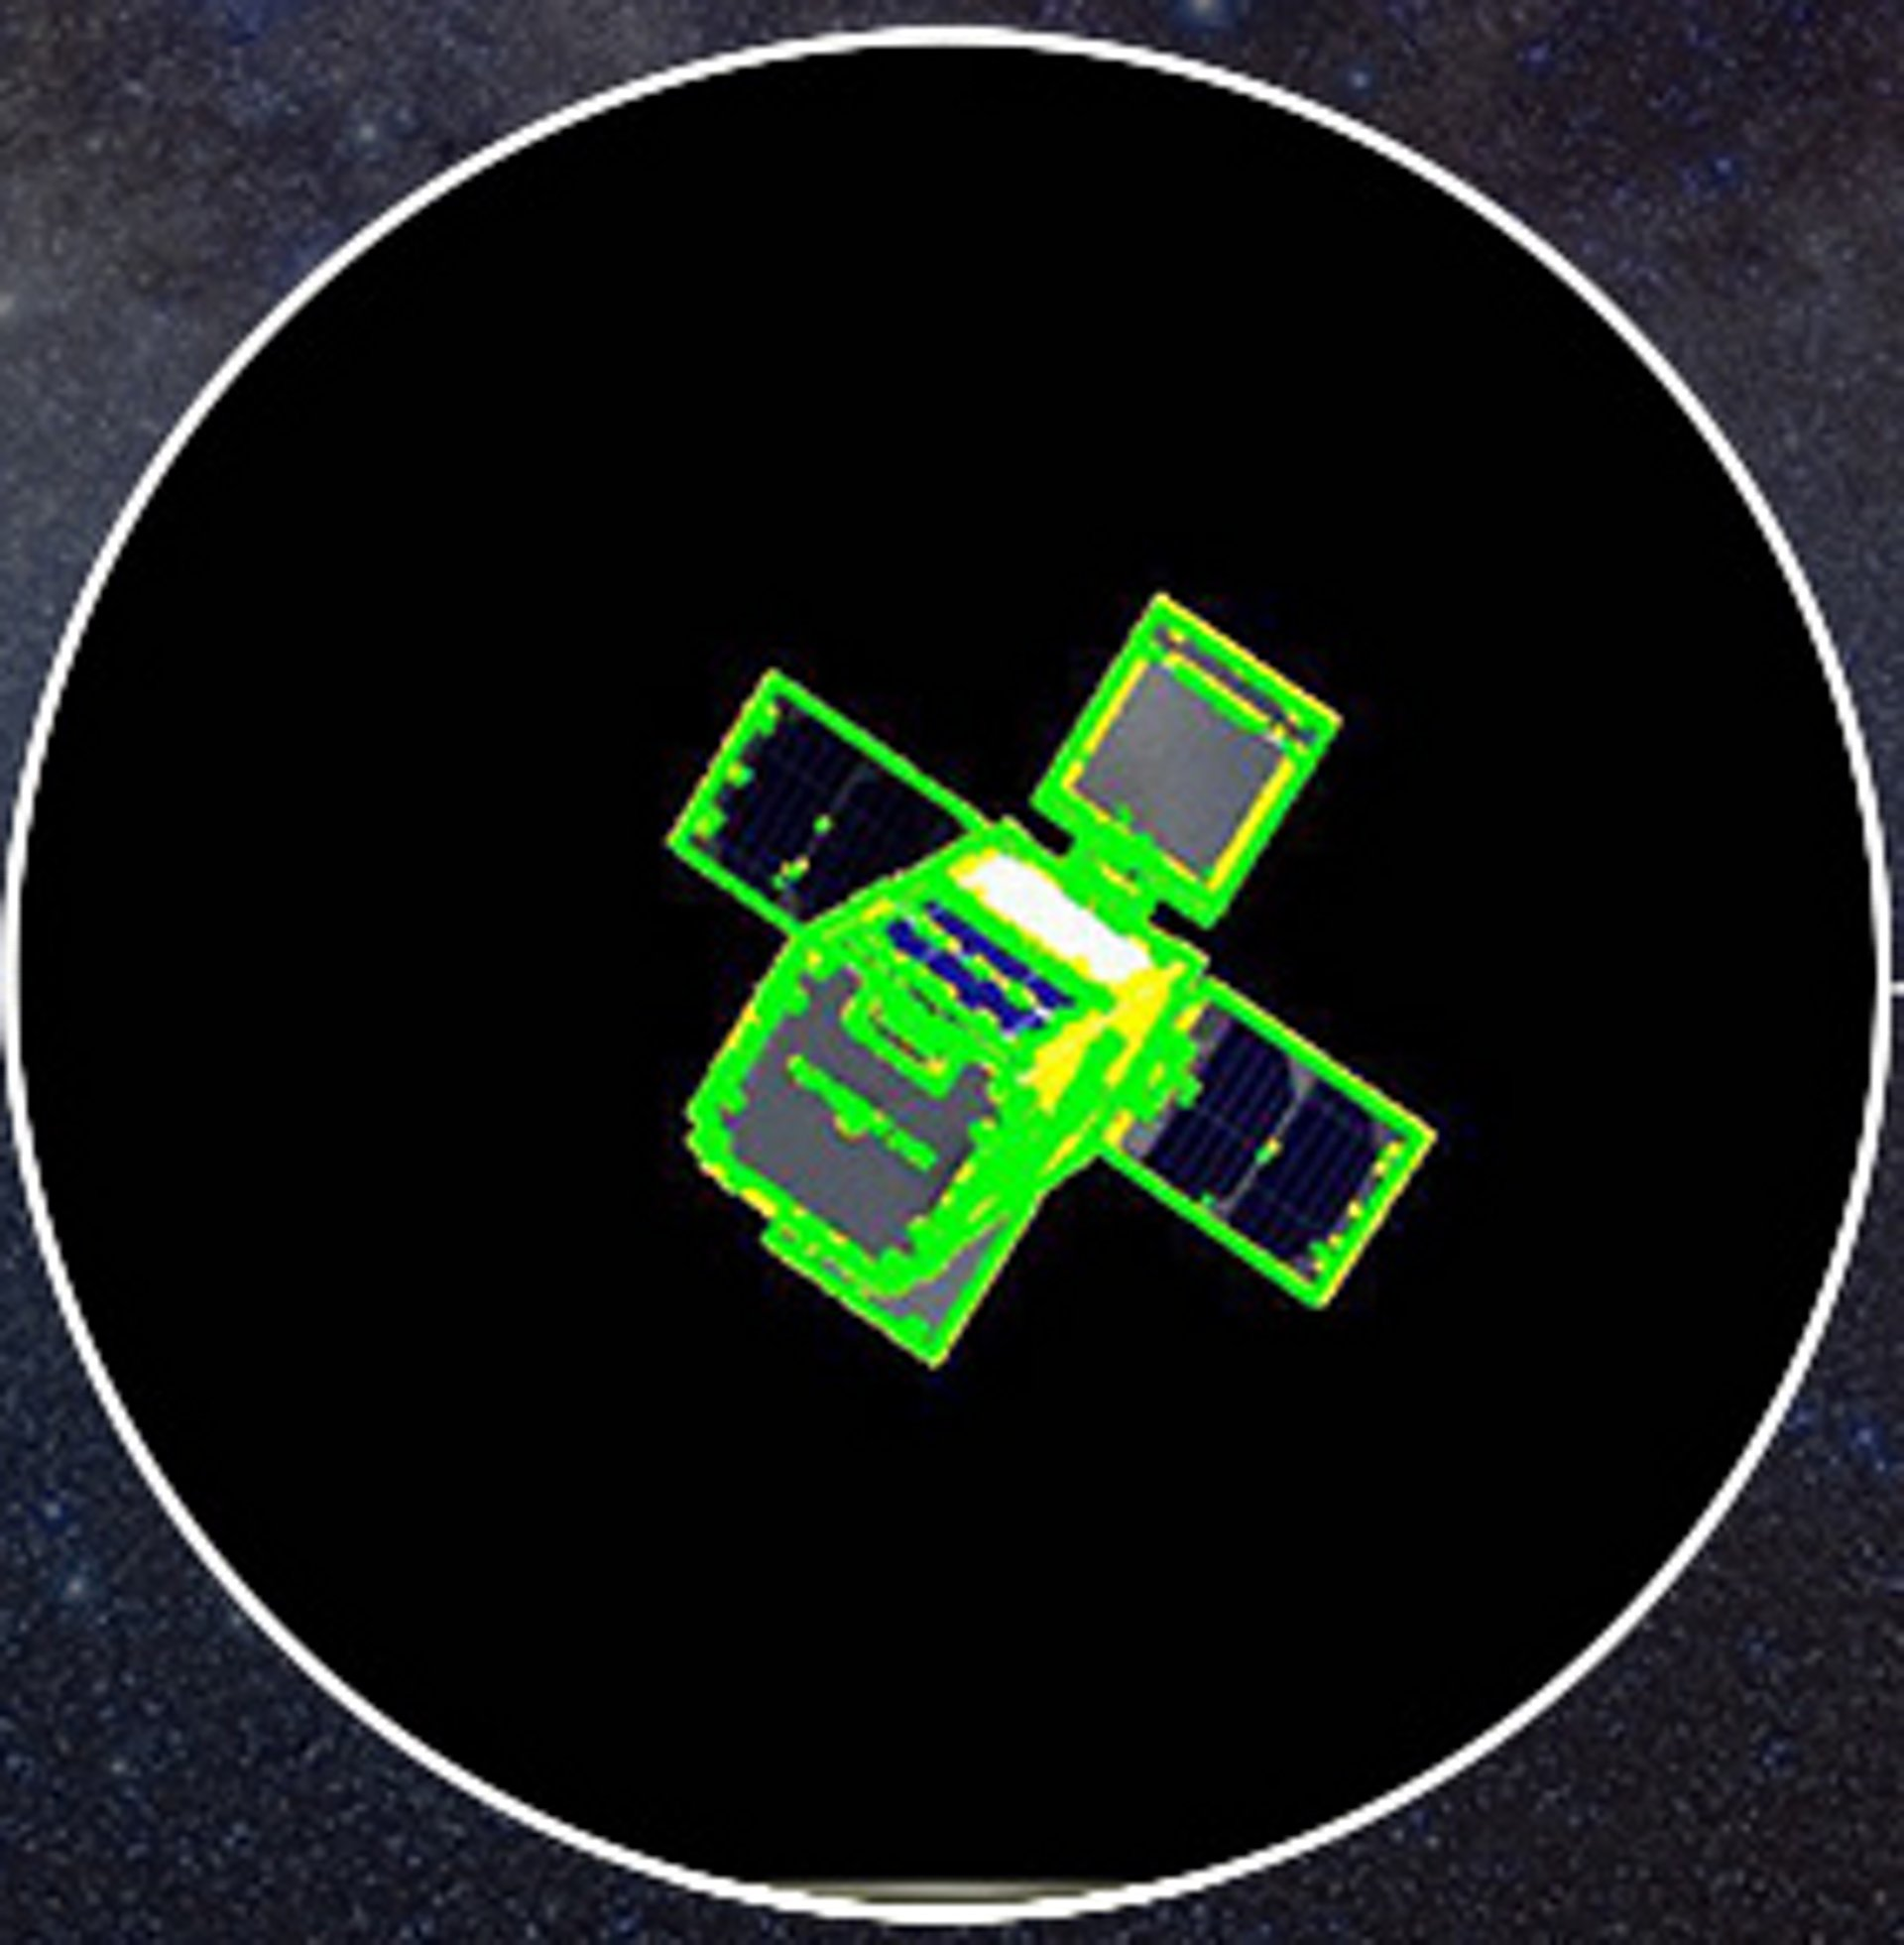 Alternative to GPS services uses 2D cameras and 3D LIDAR (light detection and ranging) technology to track in-orbit debris.